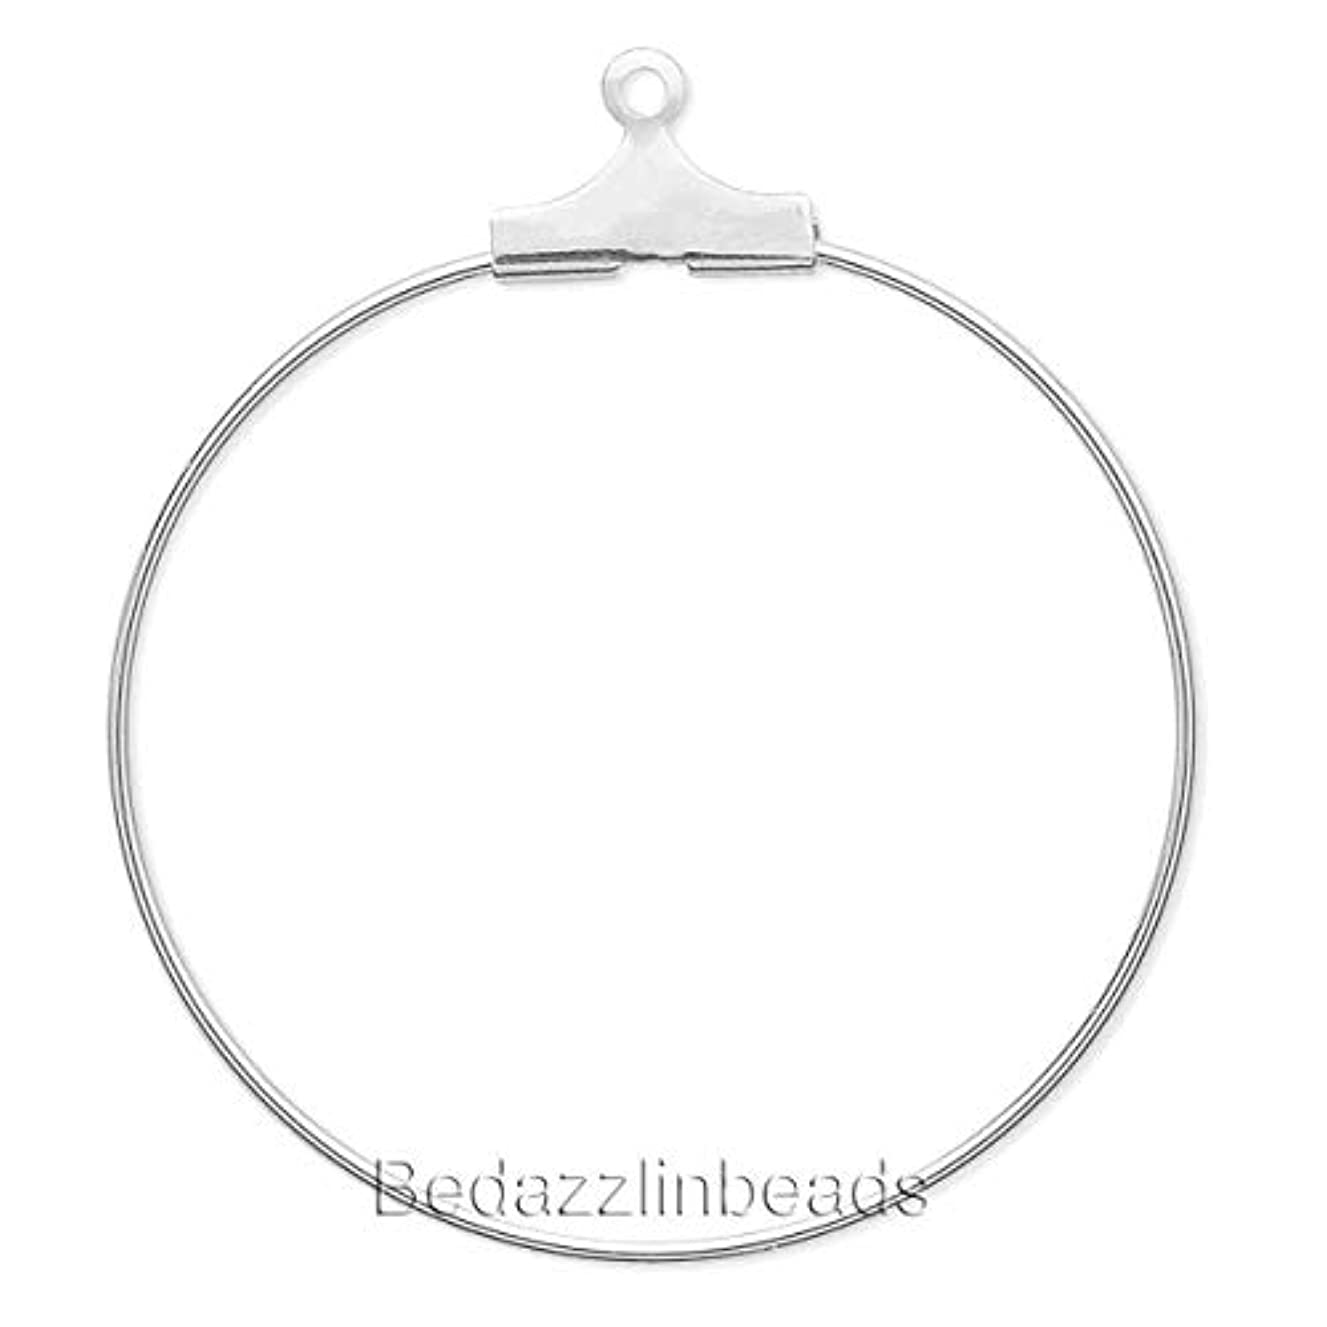 10 Silver Beading Hoop Earring Finding Components With Loop Plated Brass Metal (20mm)